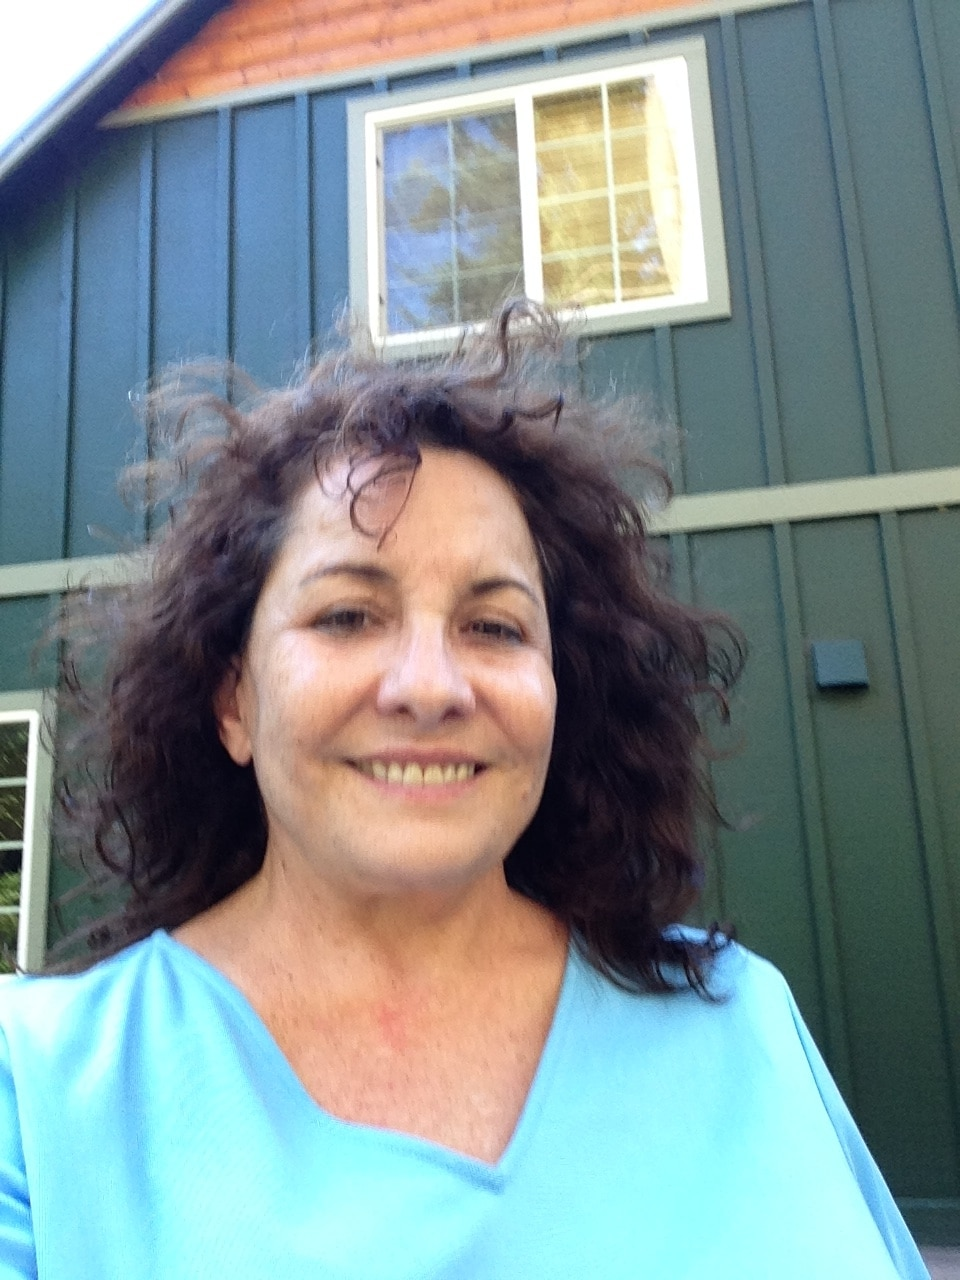 Lisa from Poulsbo